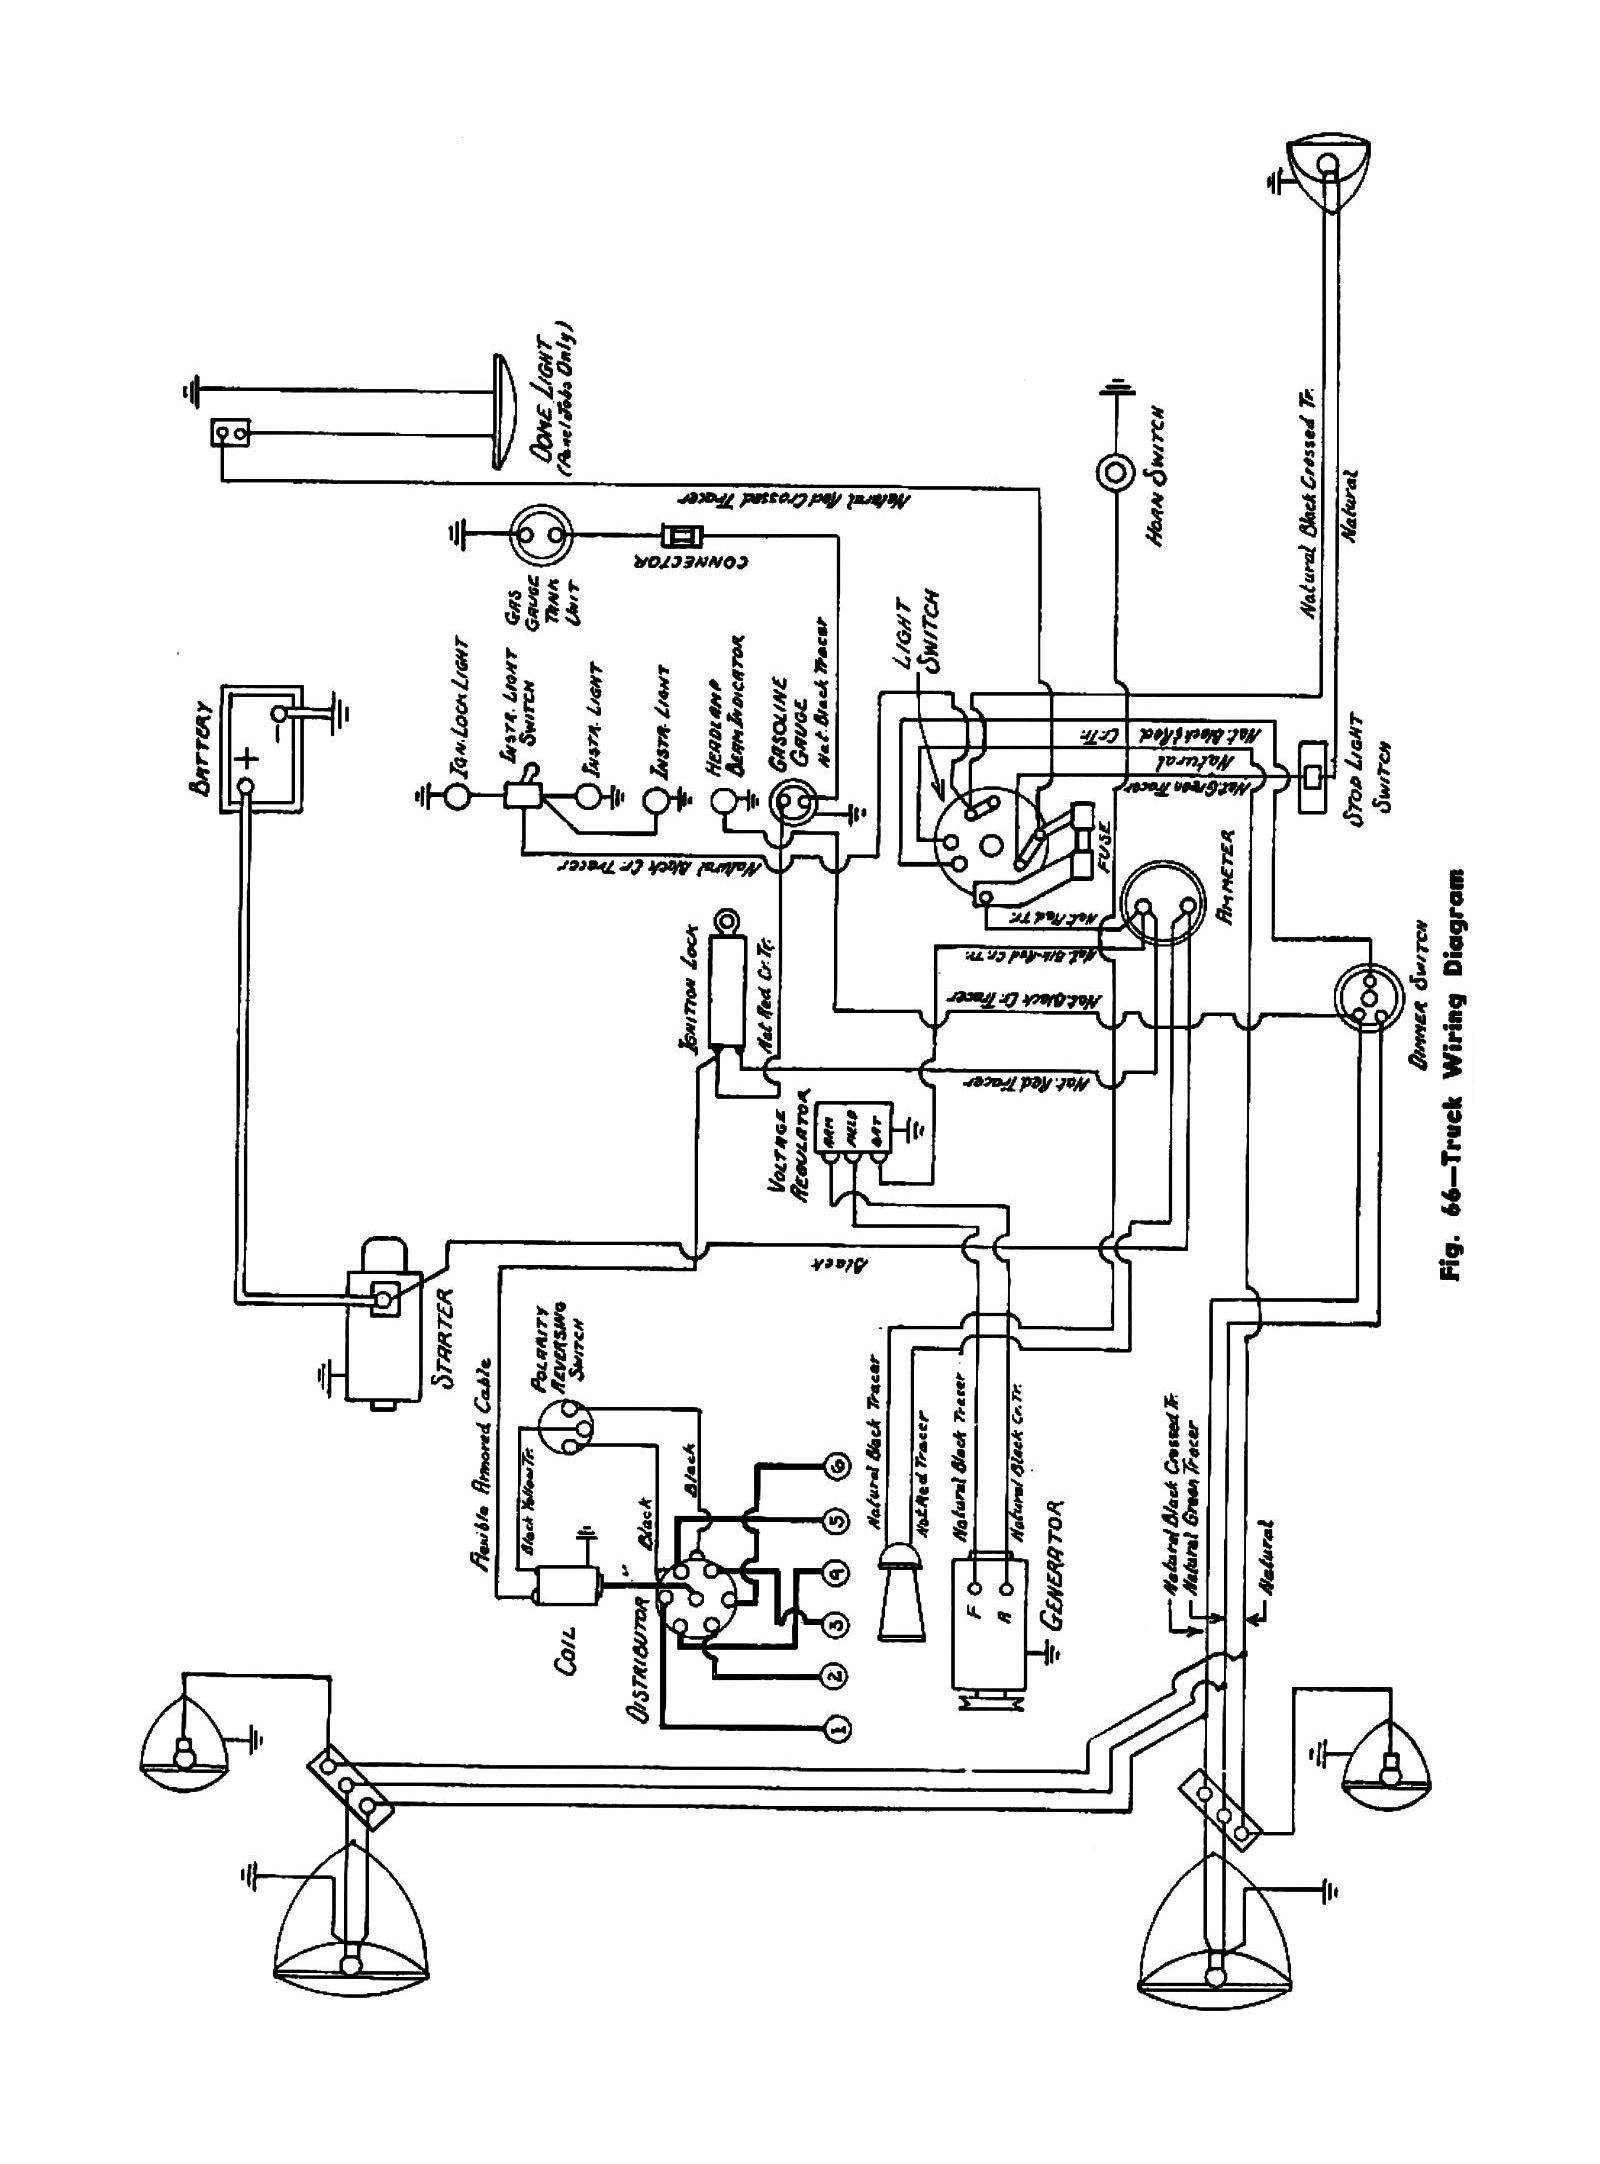 Chevy Wiring Diagrams Lighting Circuit Diagram 2 Way 1945 Truck